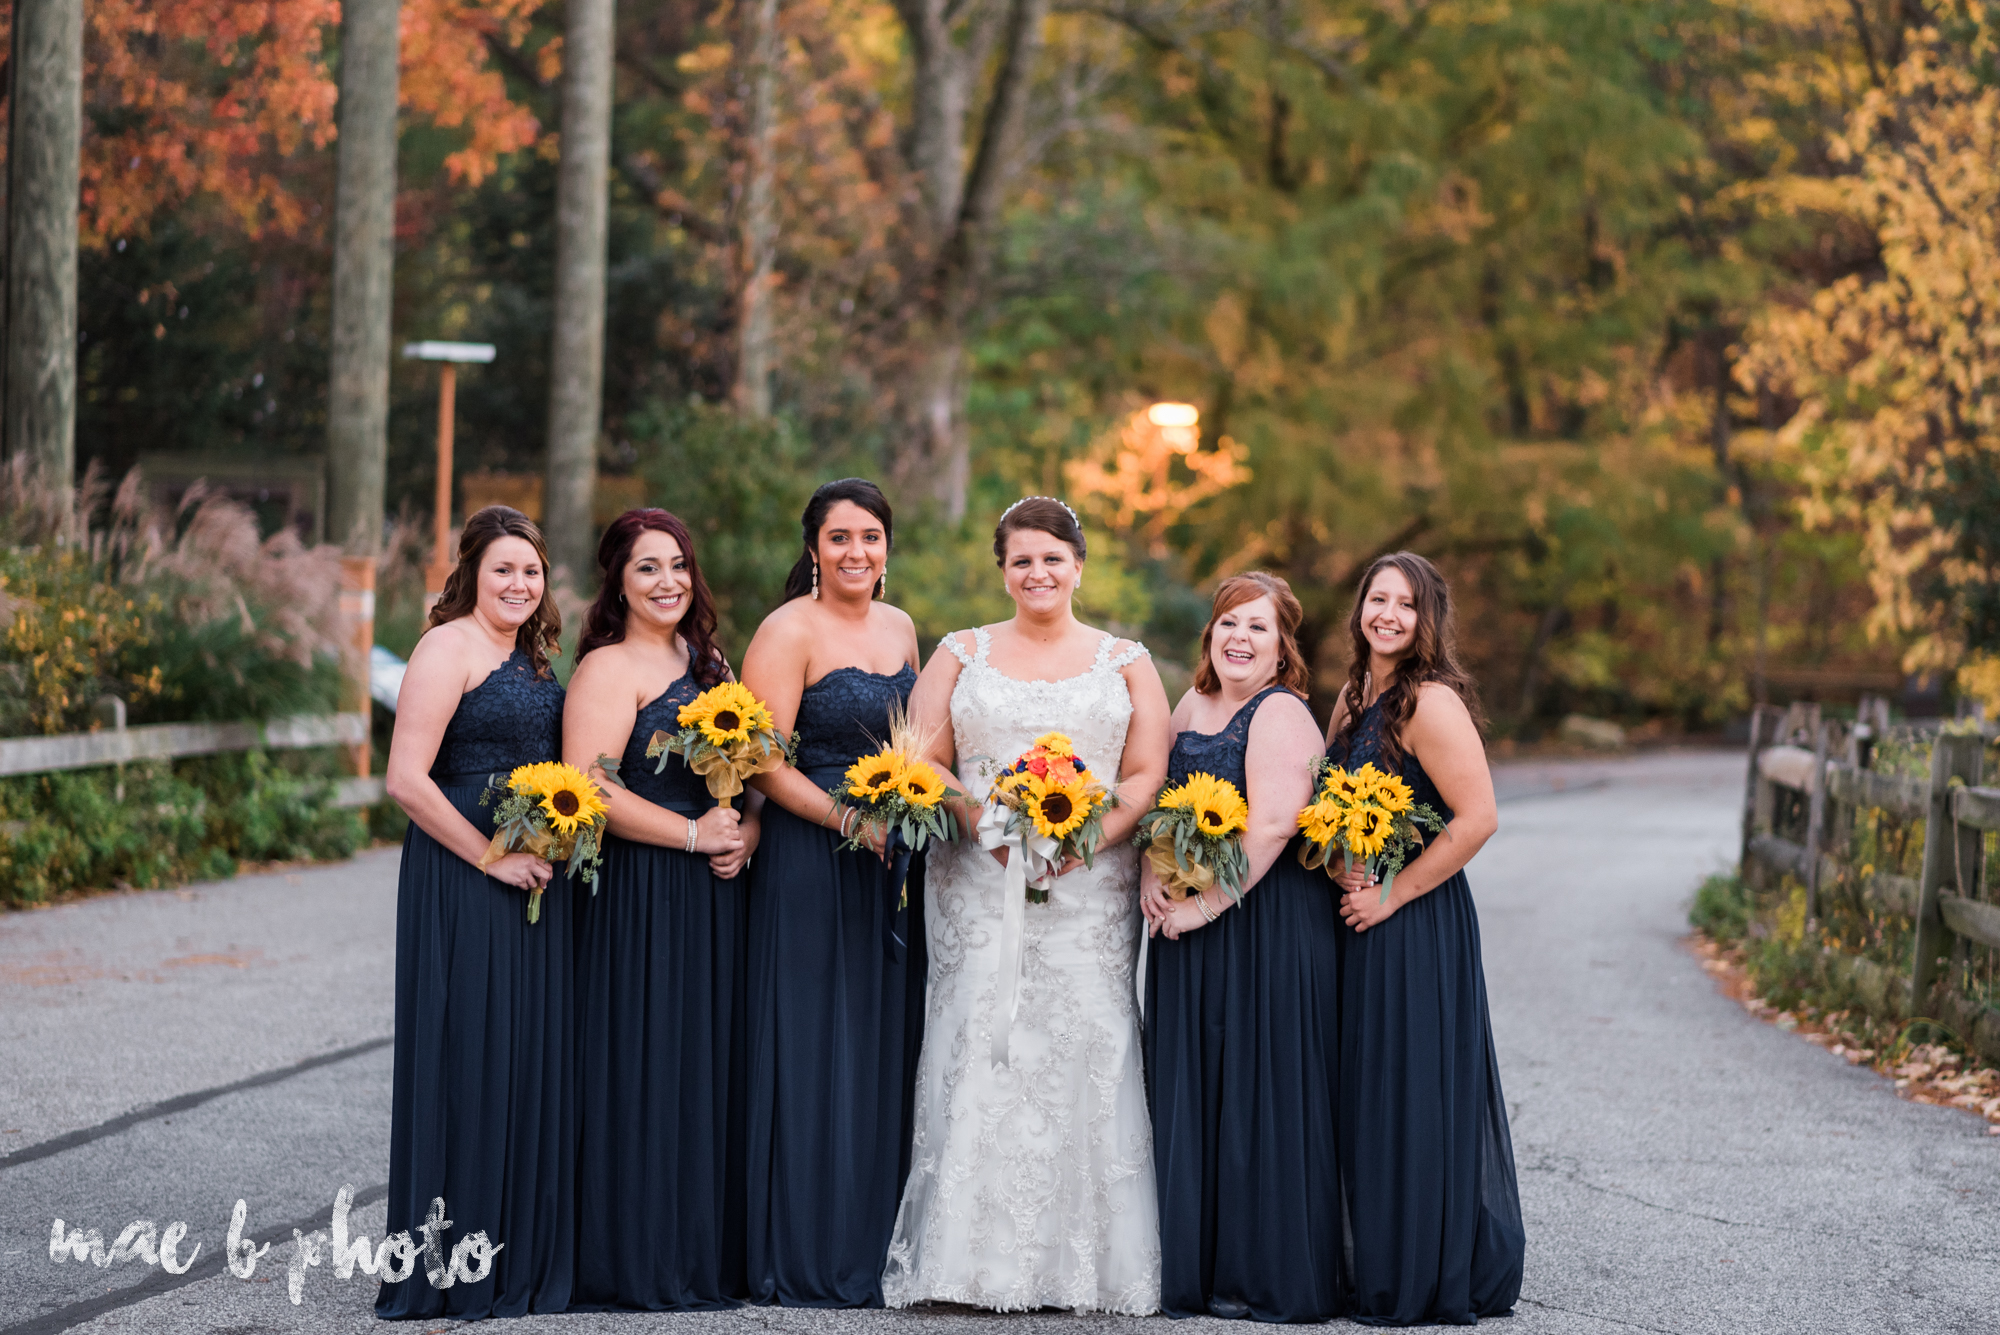 kaylynn & matt's fall zoo wedding at the cleveland metroparks zoo in cleveland ohio photographed by mae b photo-46.jpg